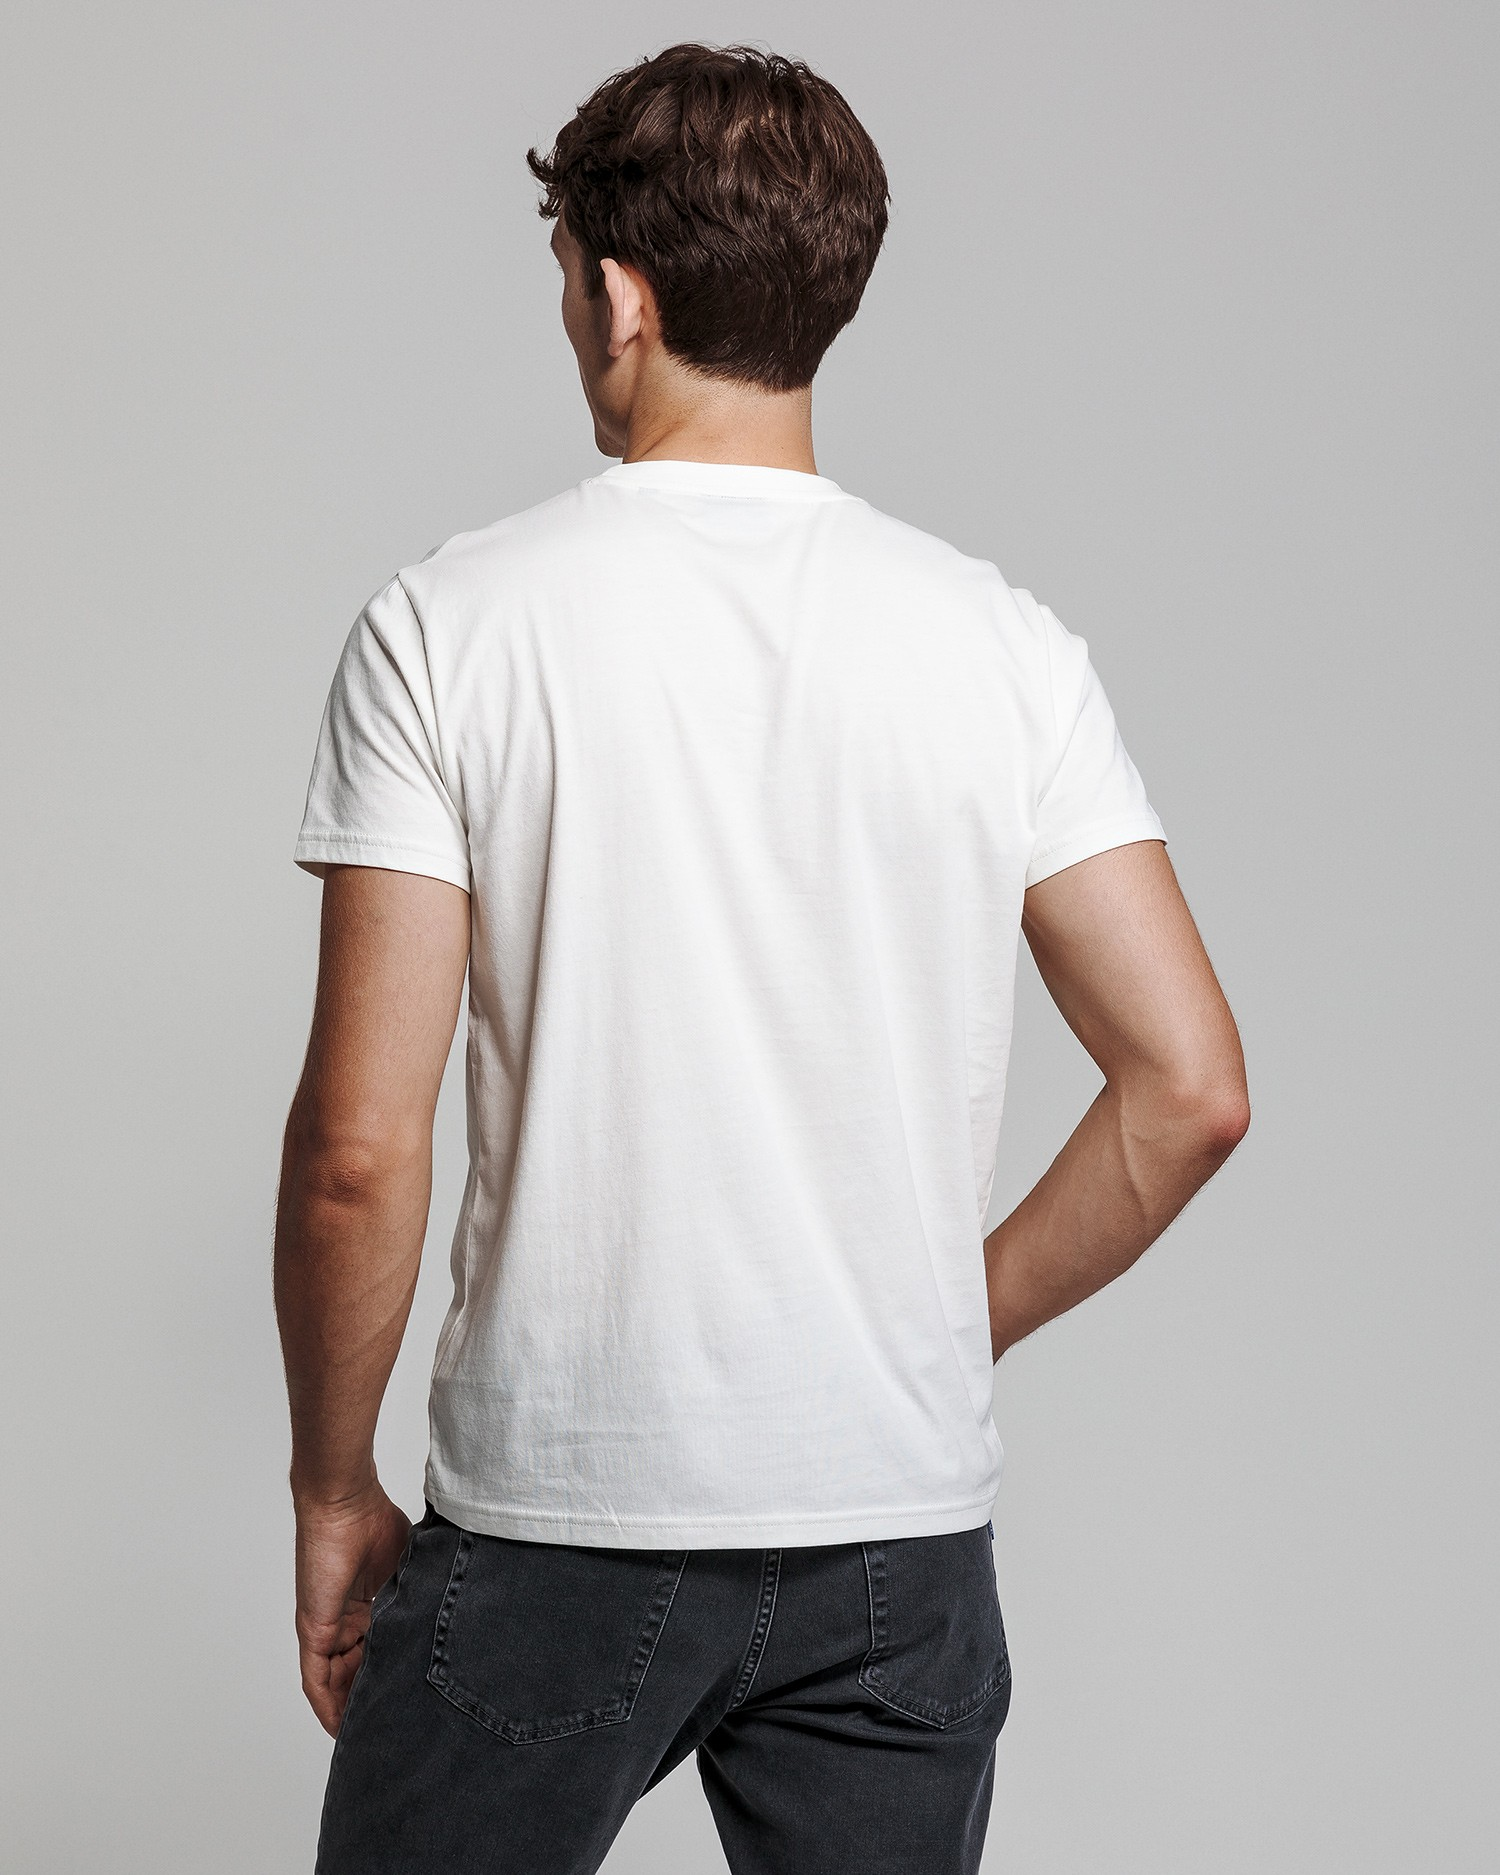 GANT Men's T-Shirt - 2003064